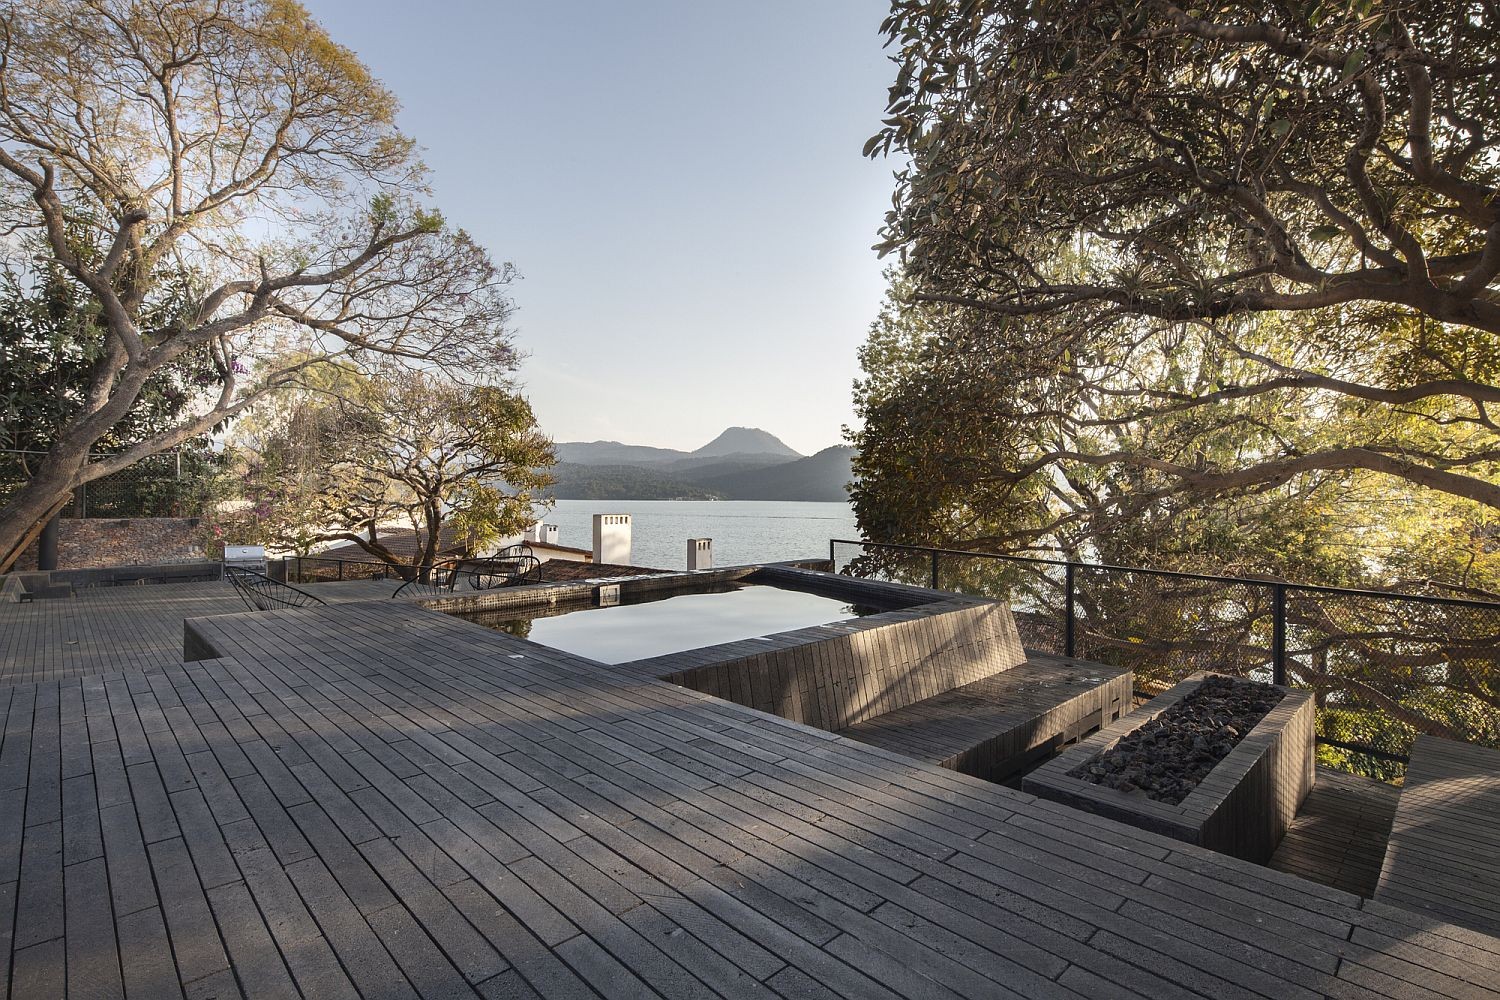 Perfect outdoor recreational area with Jacuzzi that offers lake views